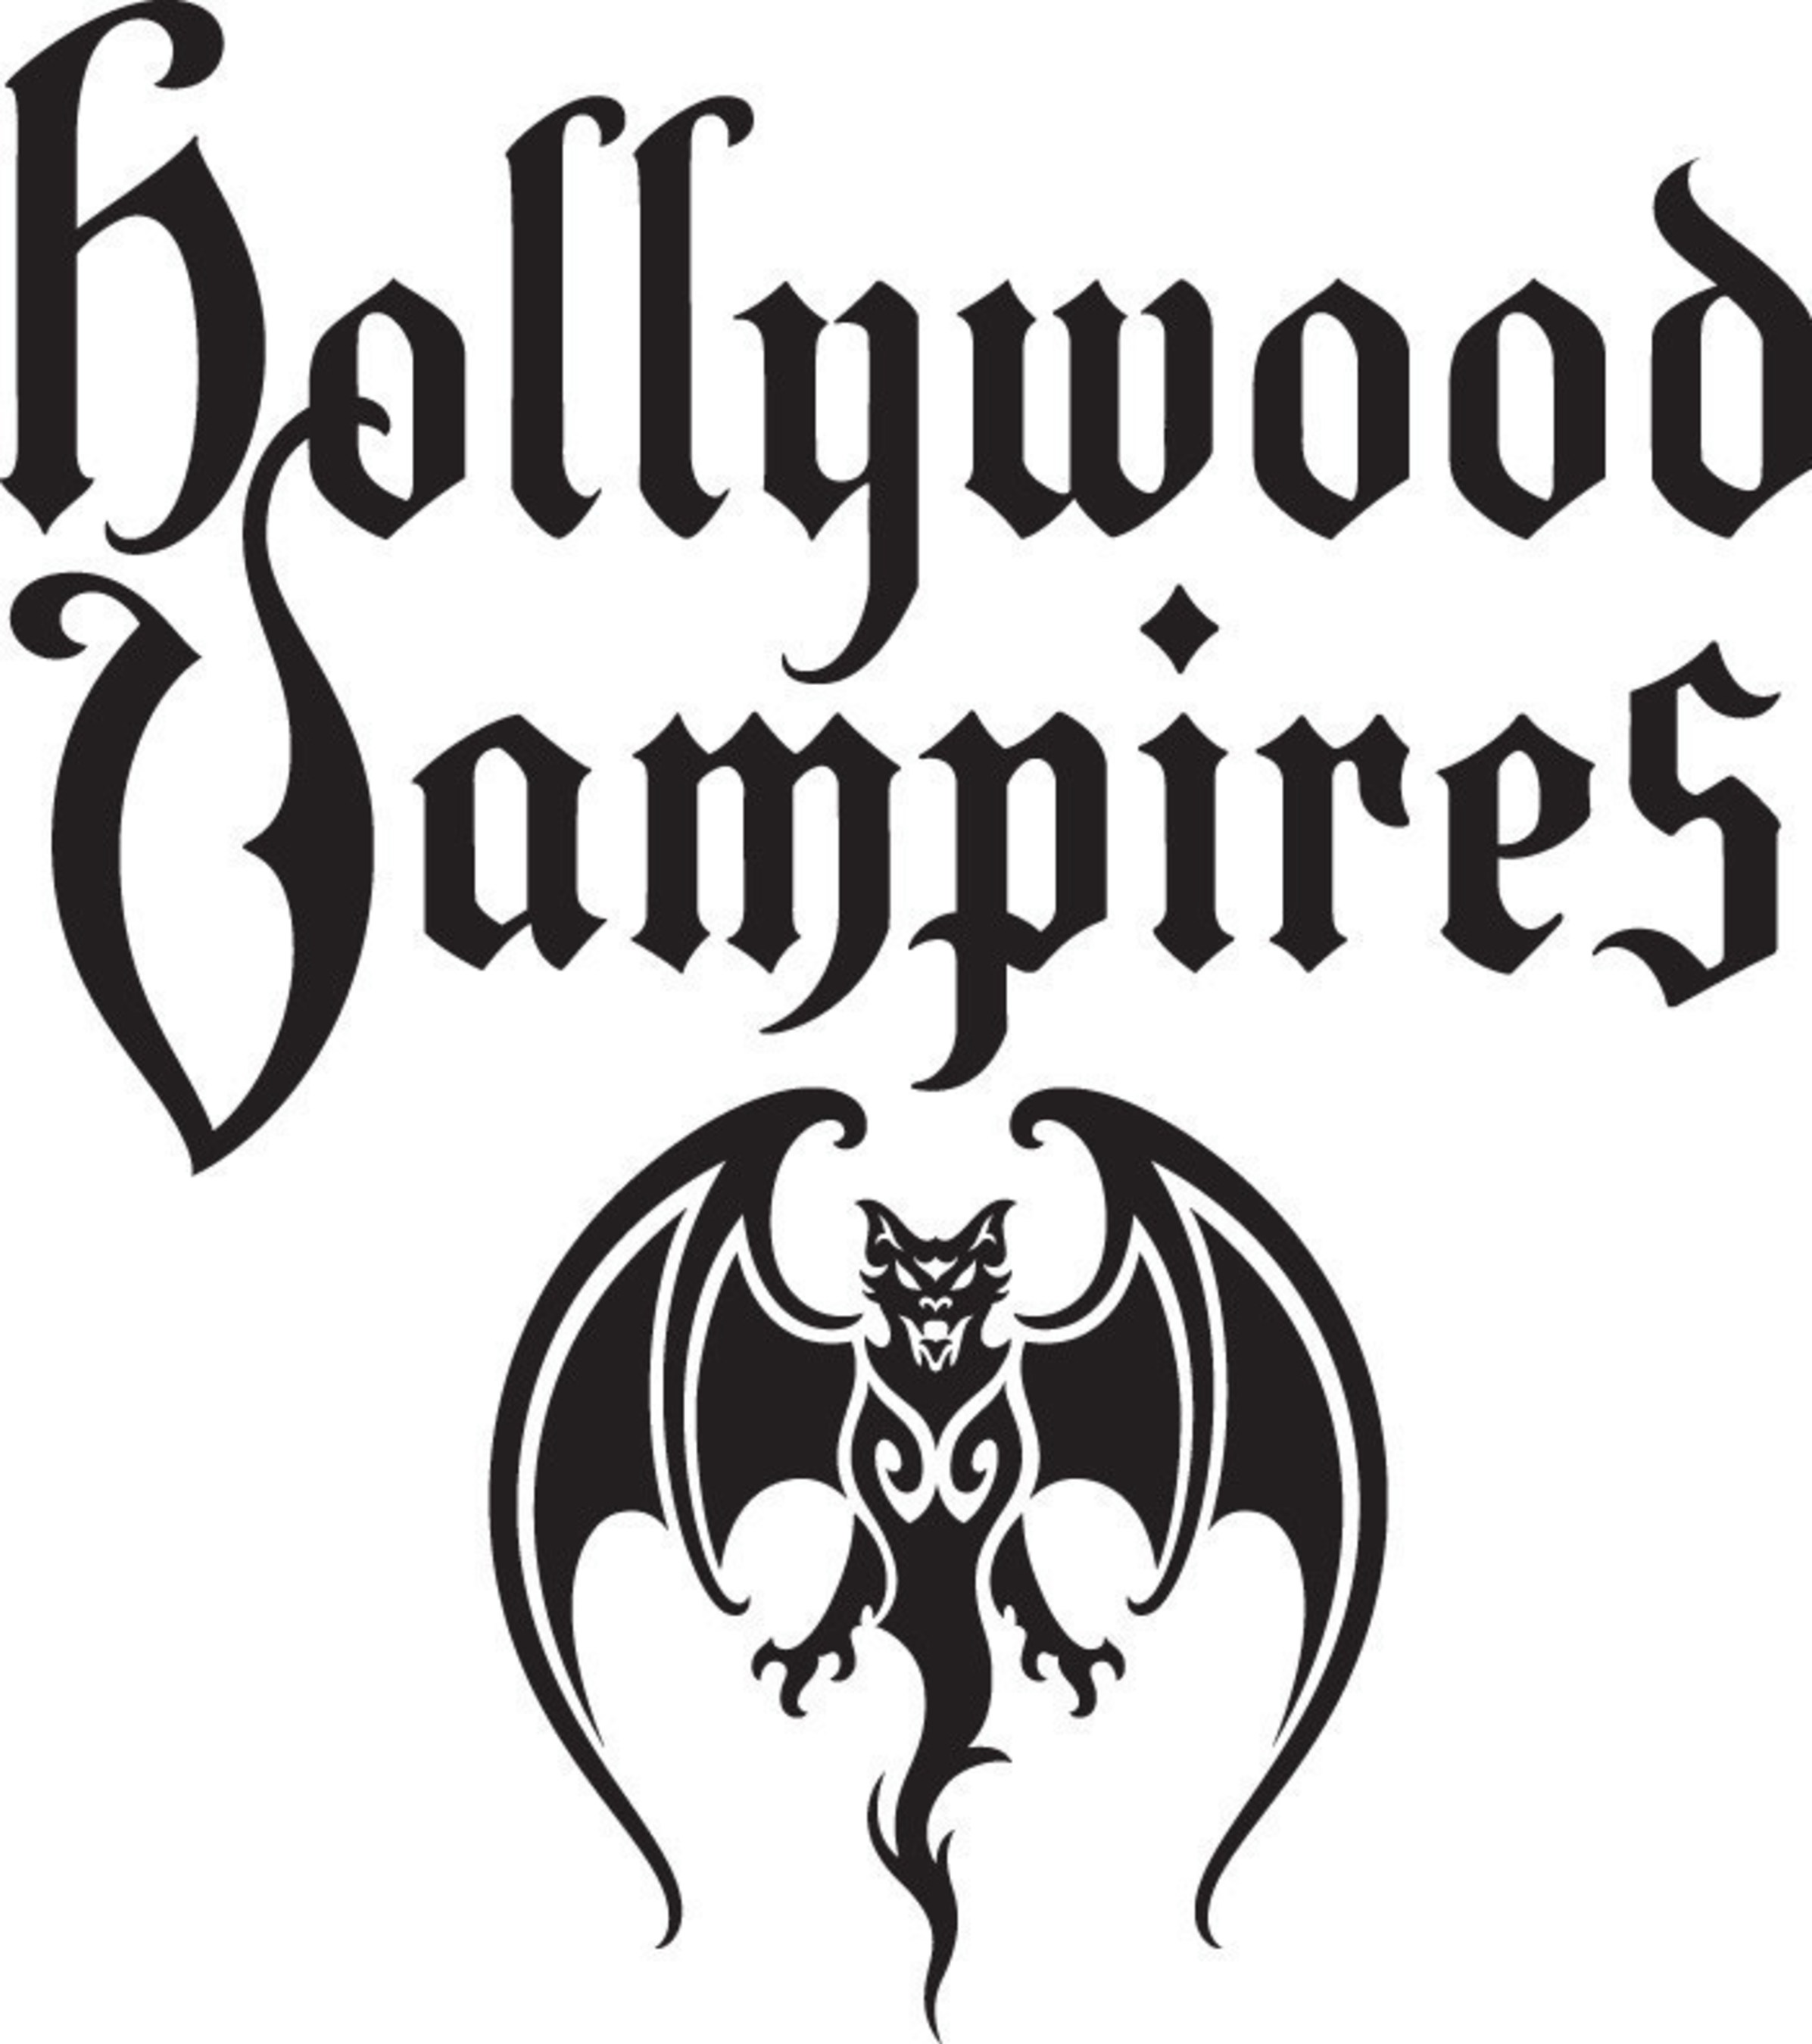 The Hollywood Vampires - Alice Cooper, Joe Perry, Johnny Depp - To Tour Around The Globe